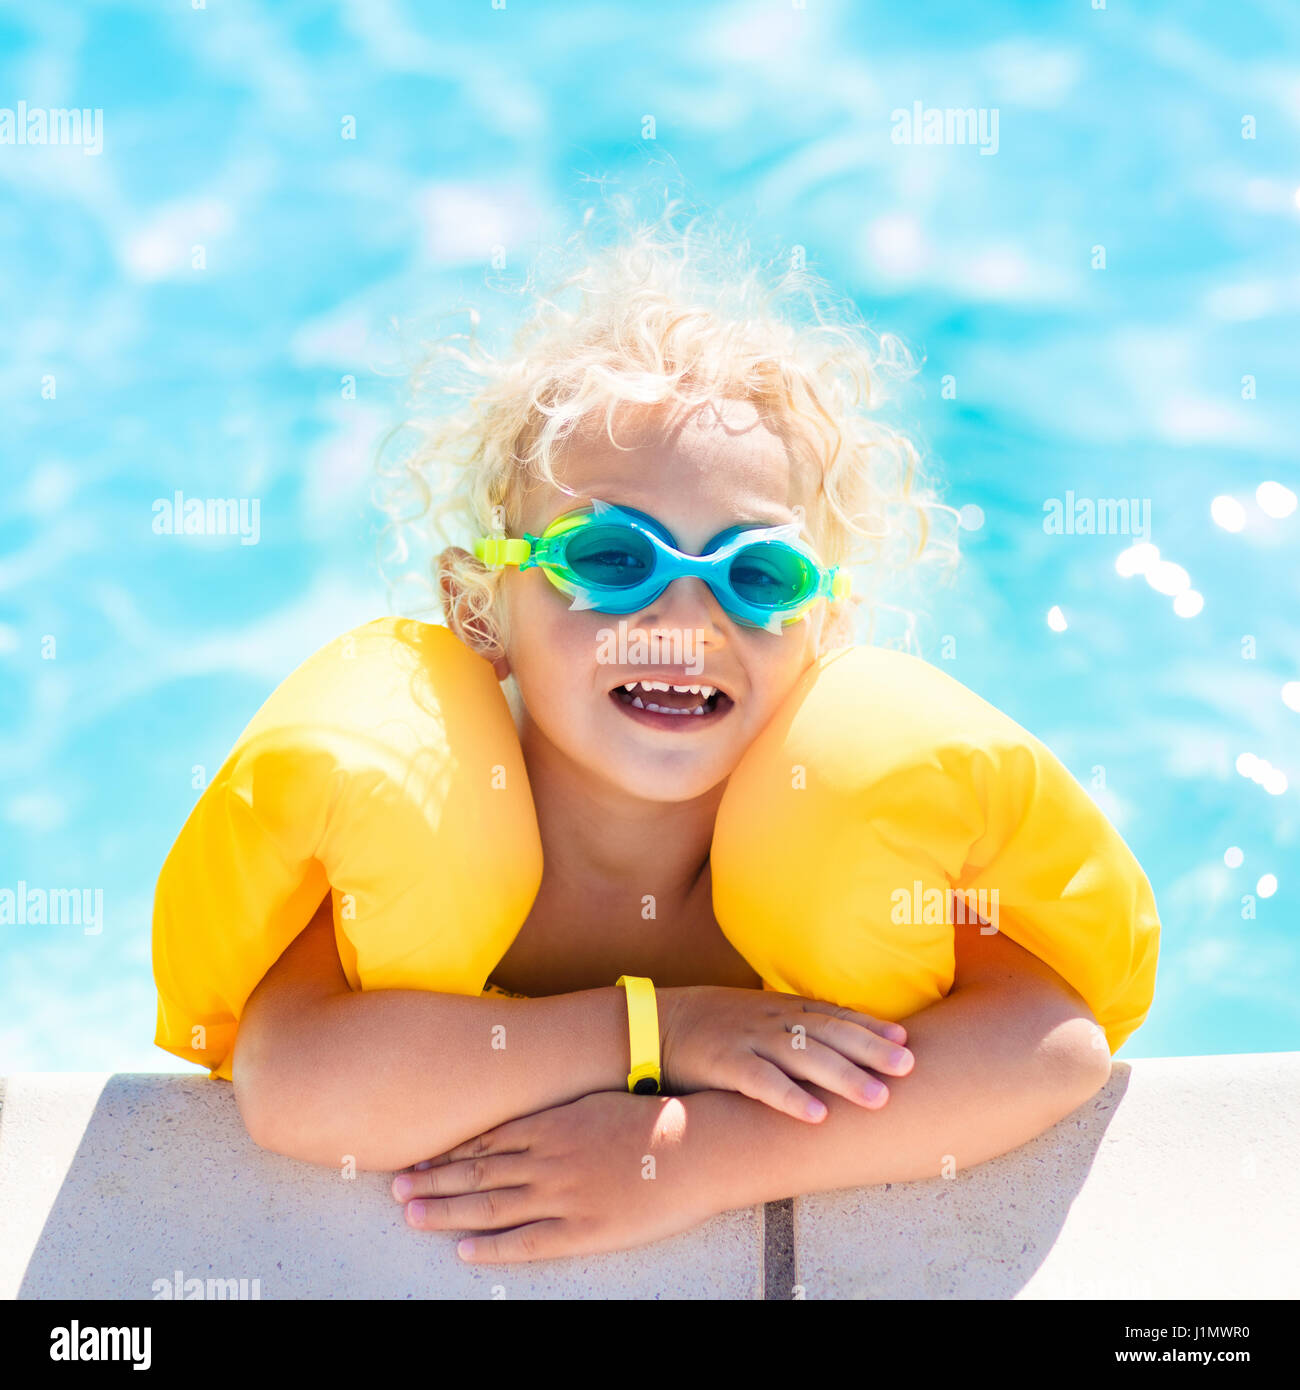 81fadc8d21 Happy laughing little baby boy playing in outdoor swimming pool on a hot  summer day. Kids learn to swim. Child with colorful floaties. Swimming aid  fo